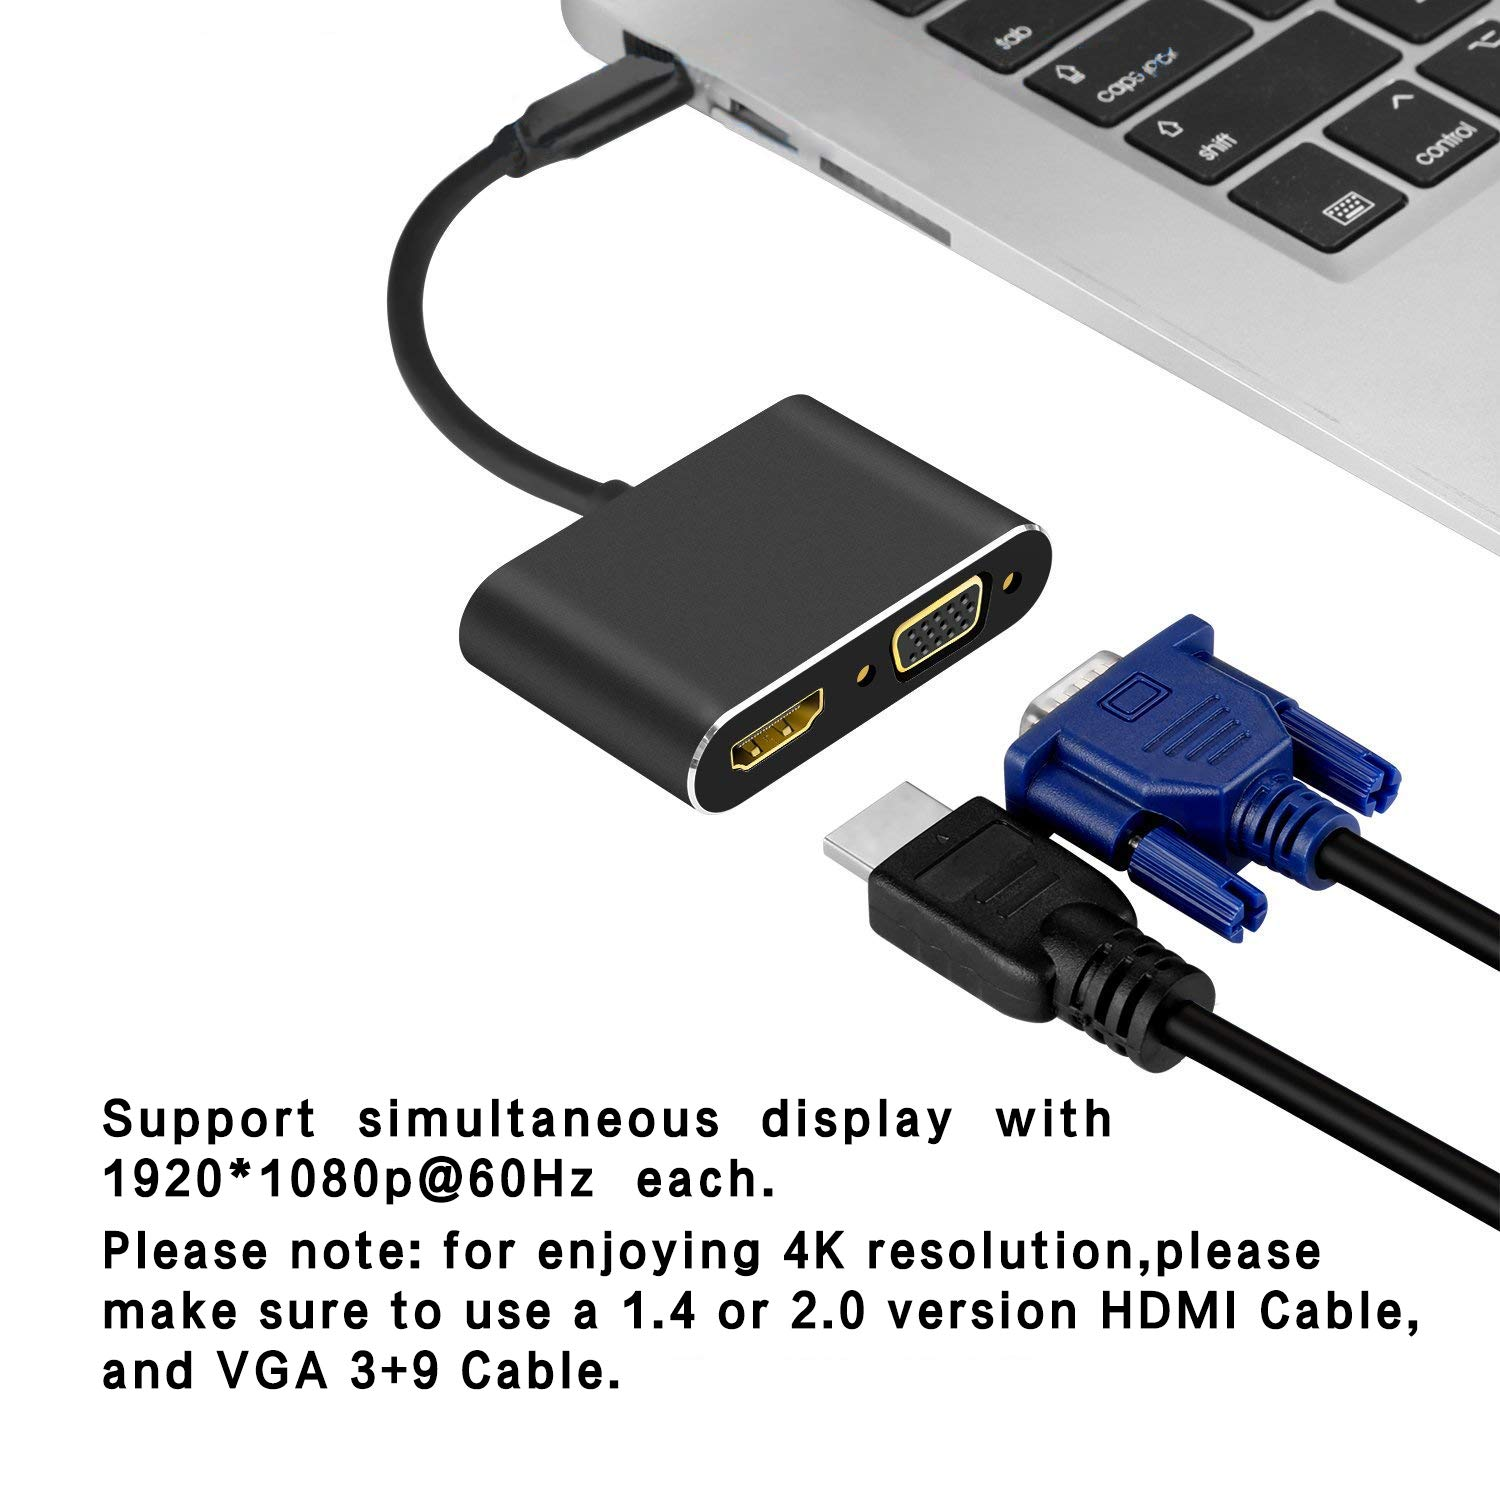 DUTOP 2 in 1 USB-C to HDMI Adaptor USB Type-C to VGA Converter Port and HDMI Cable for Macbook8/9/10,MacbookPro13,MacbookPro14,iMac18,Matebook,Notebook,Air12,ThinkPadX1,Lenovo,Huawei,iphone8 and More